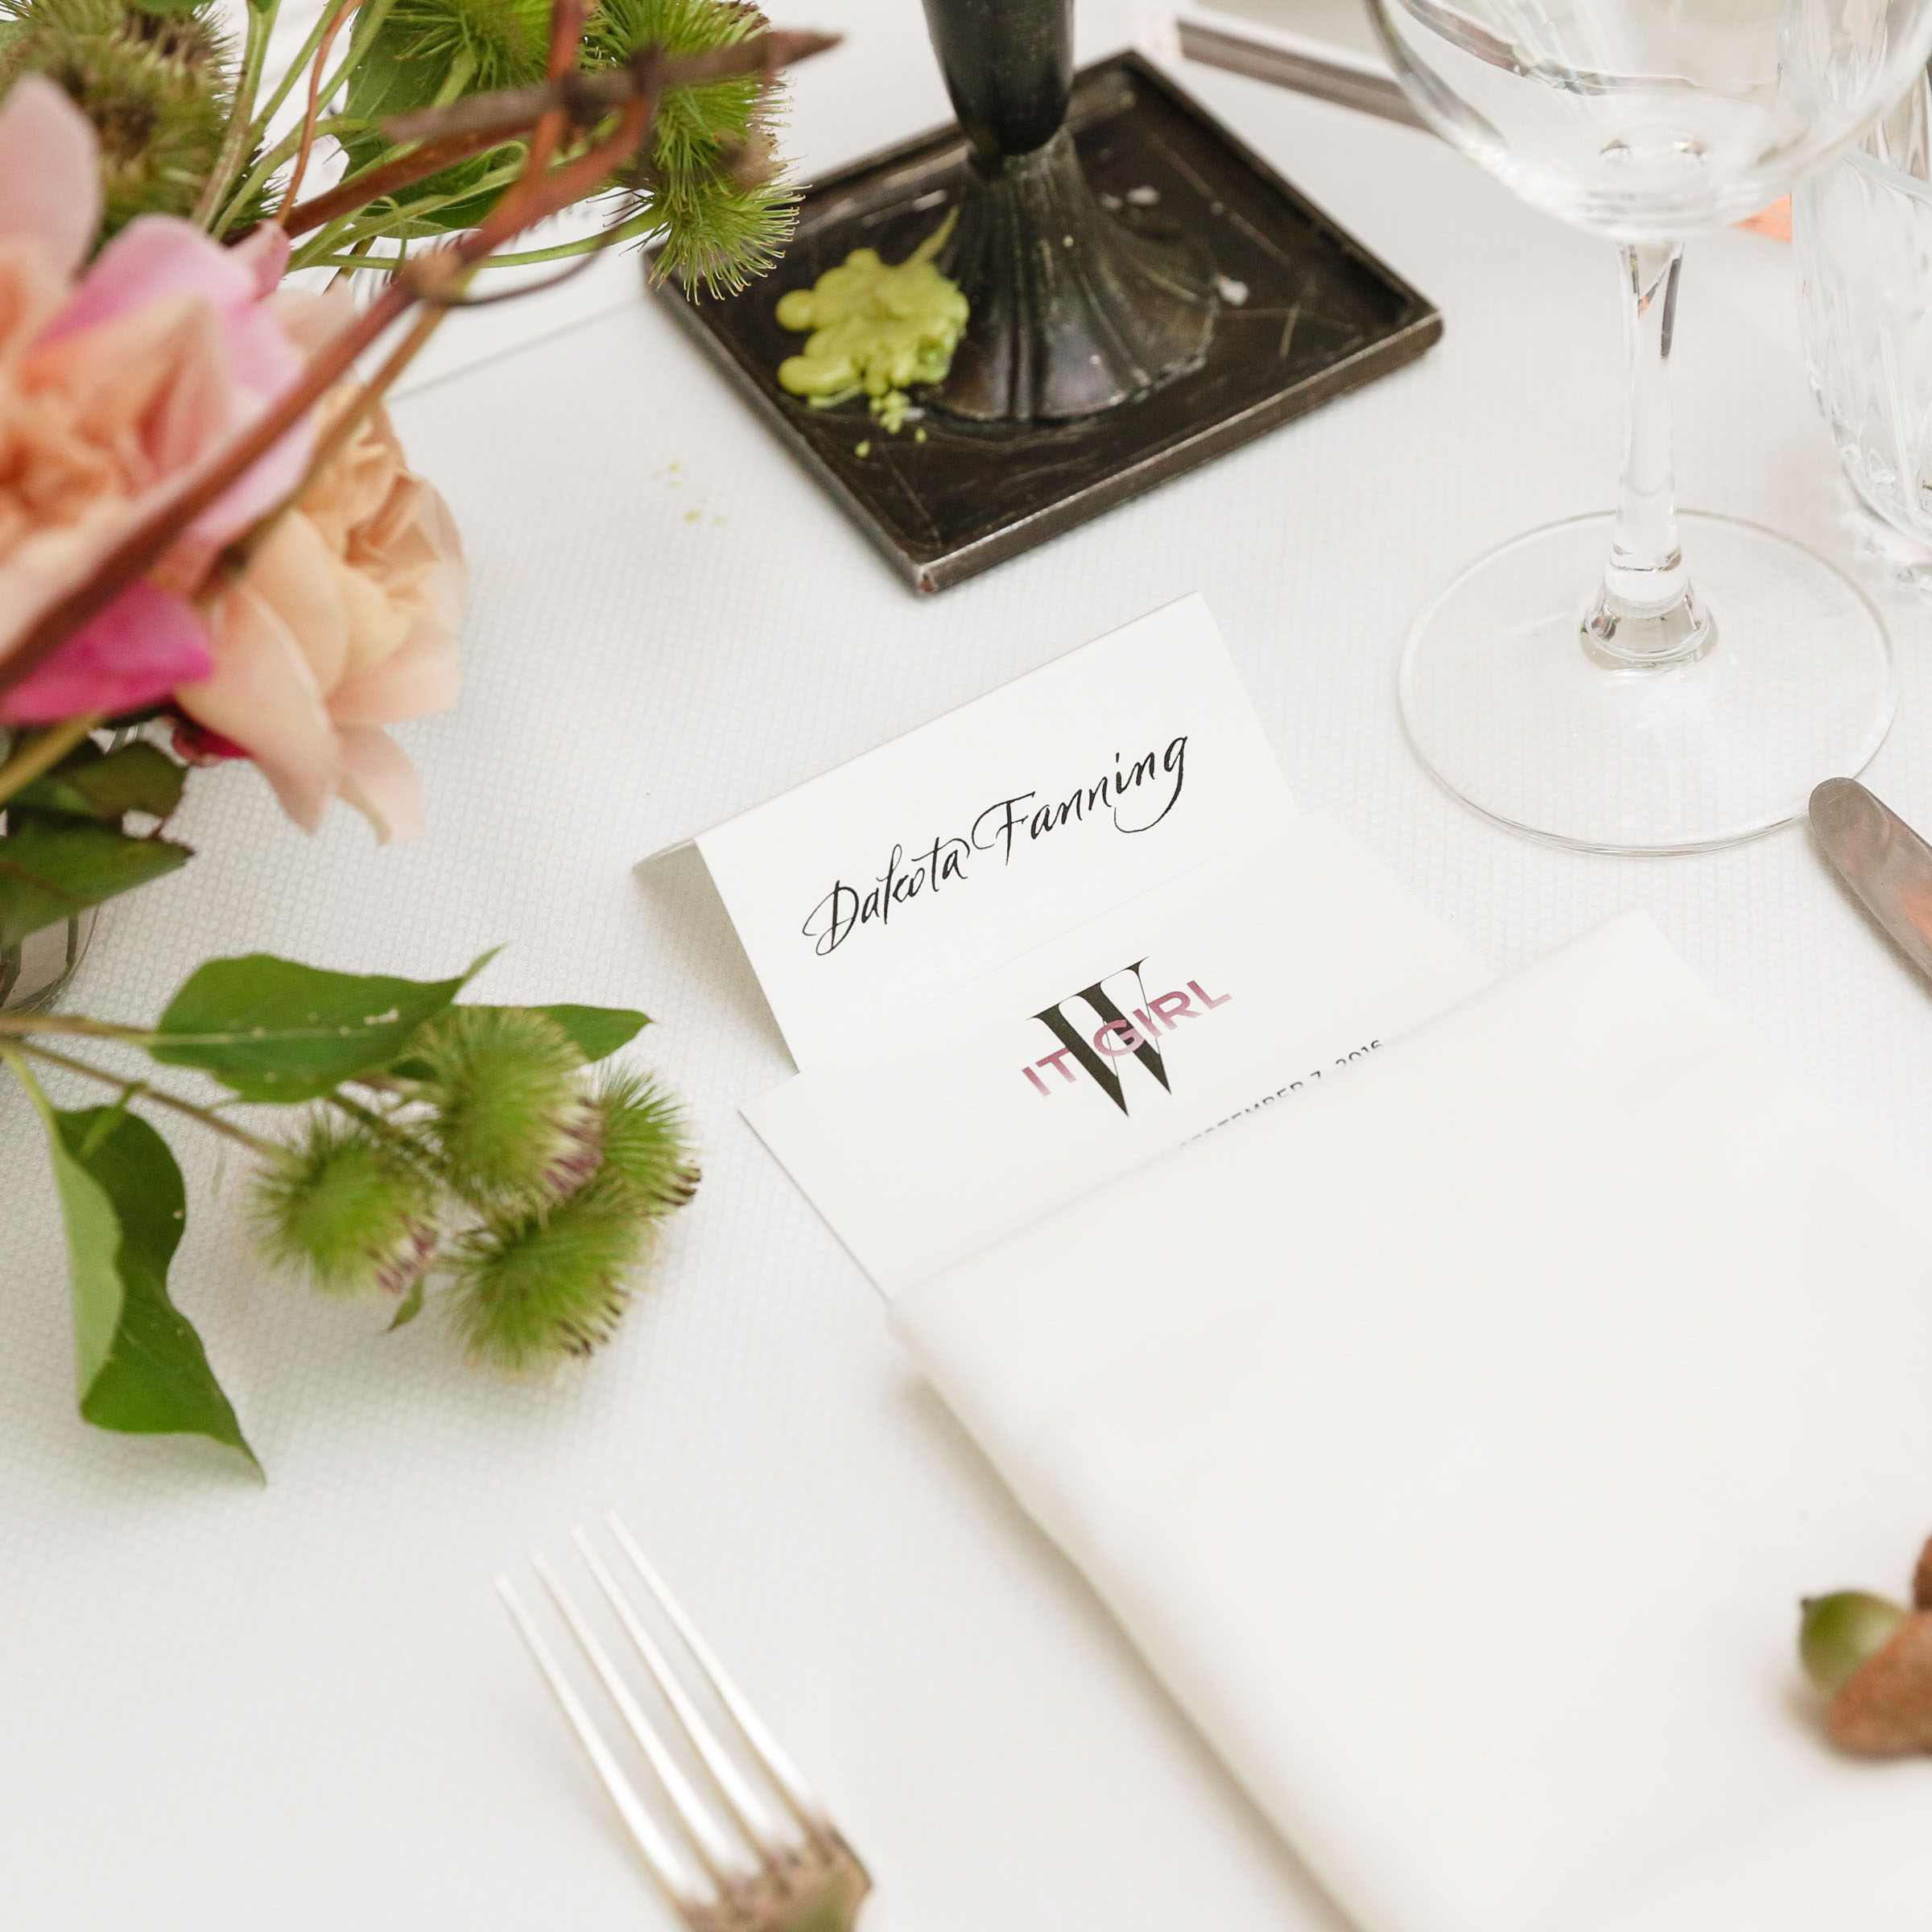 W Magazine 'It' Girl Lunch with Jimmy Choo